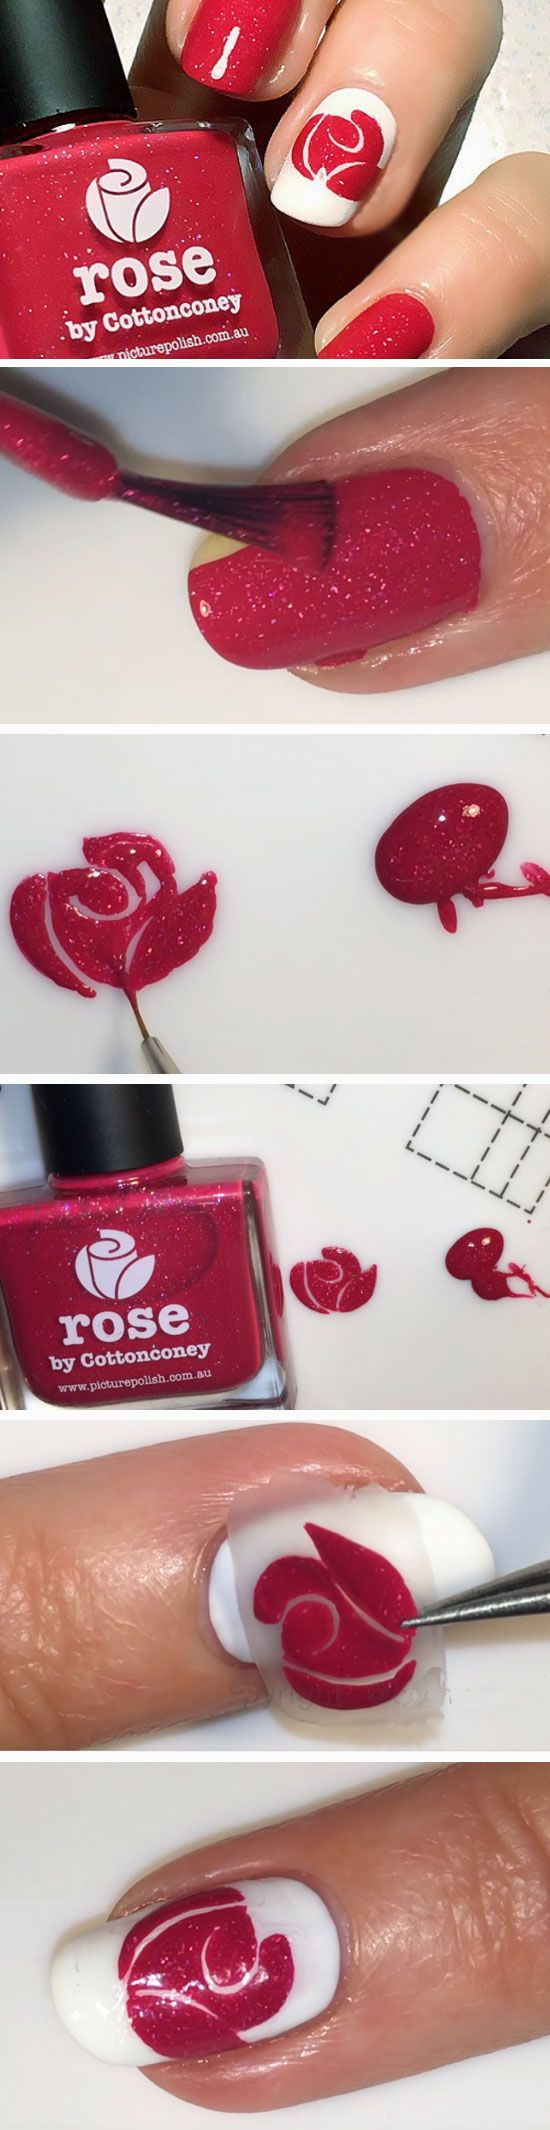 23 Cute Valentines Day Nail Art Ideas for Teens